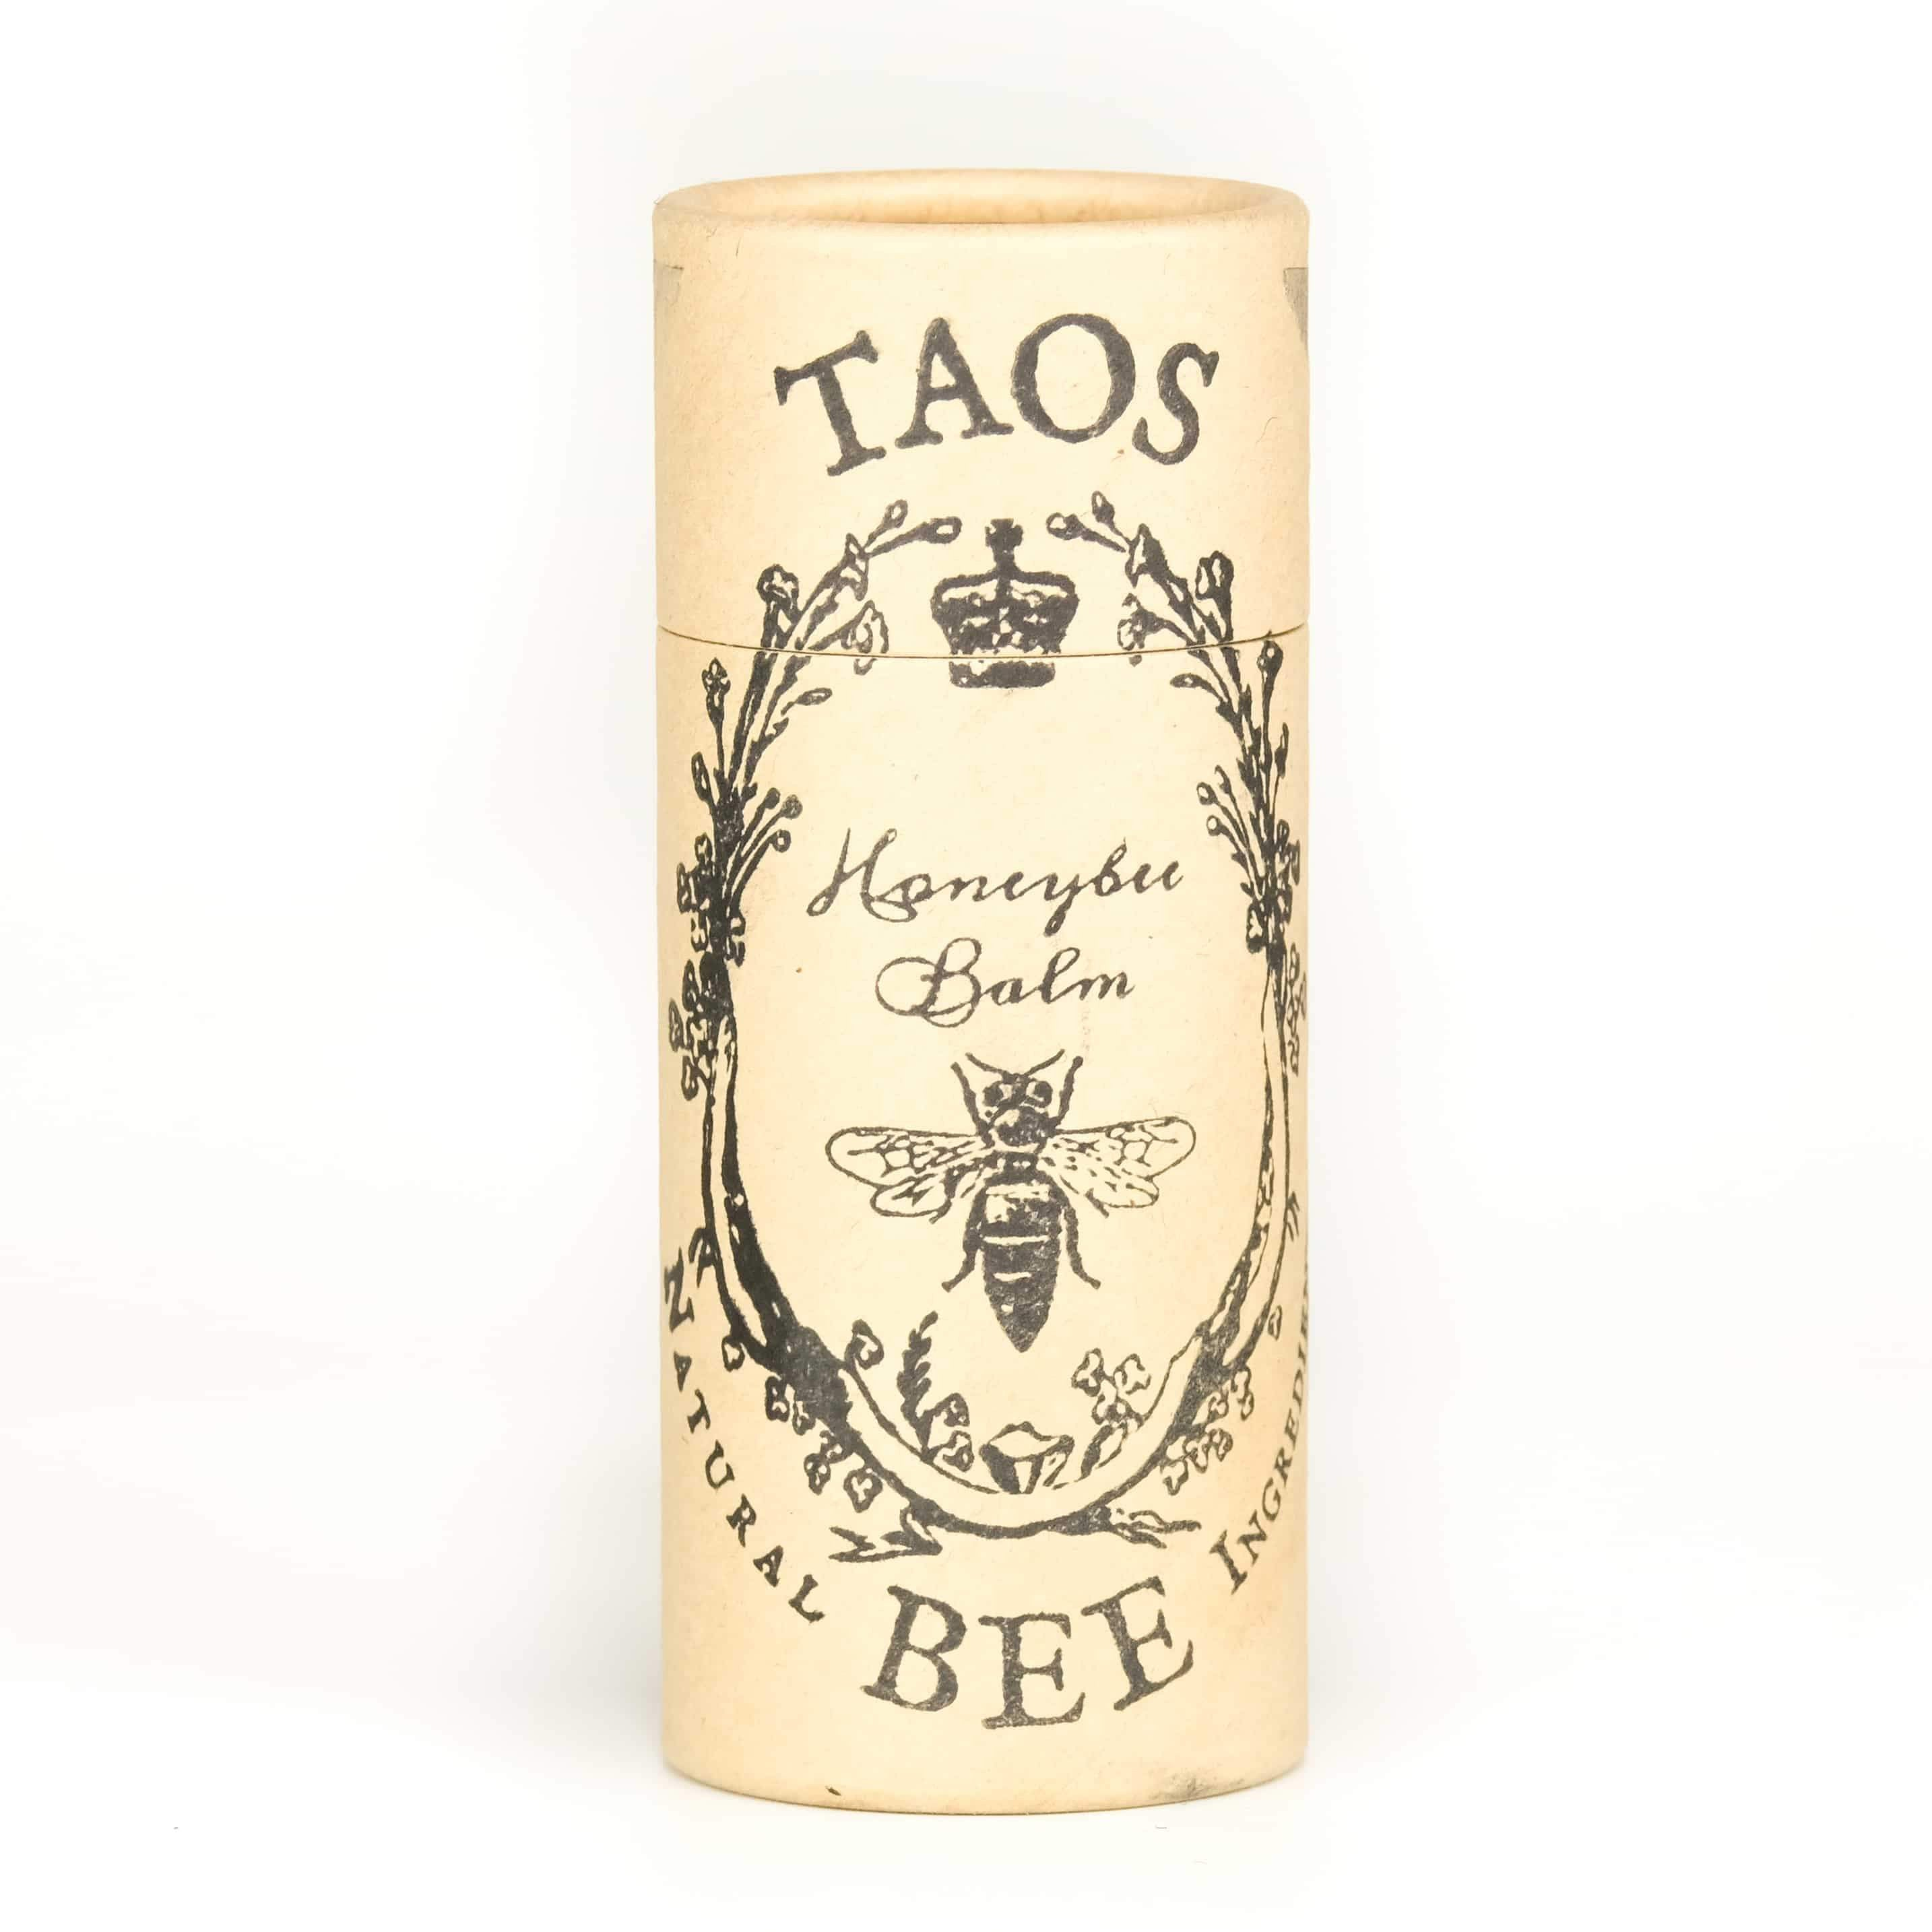 Honeybee Balm, Taos Bee